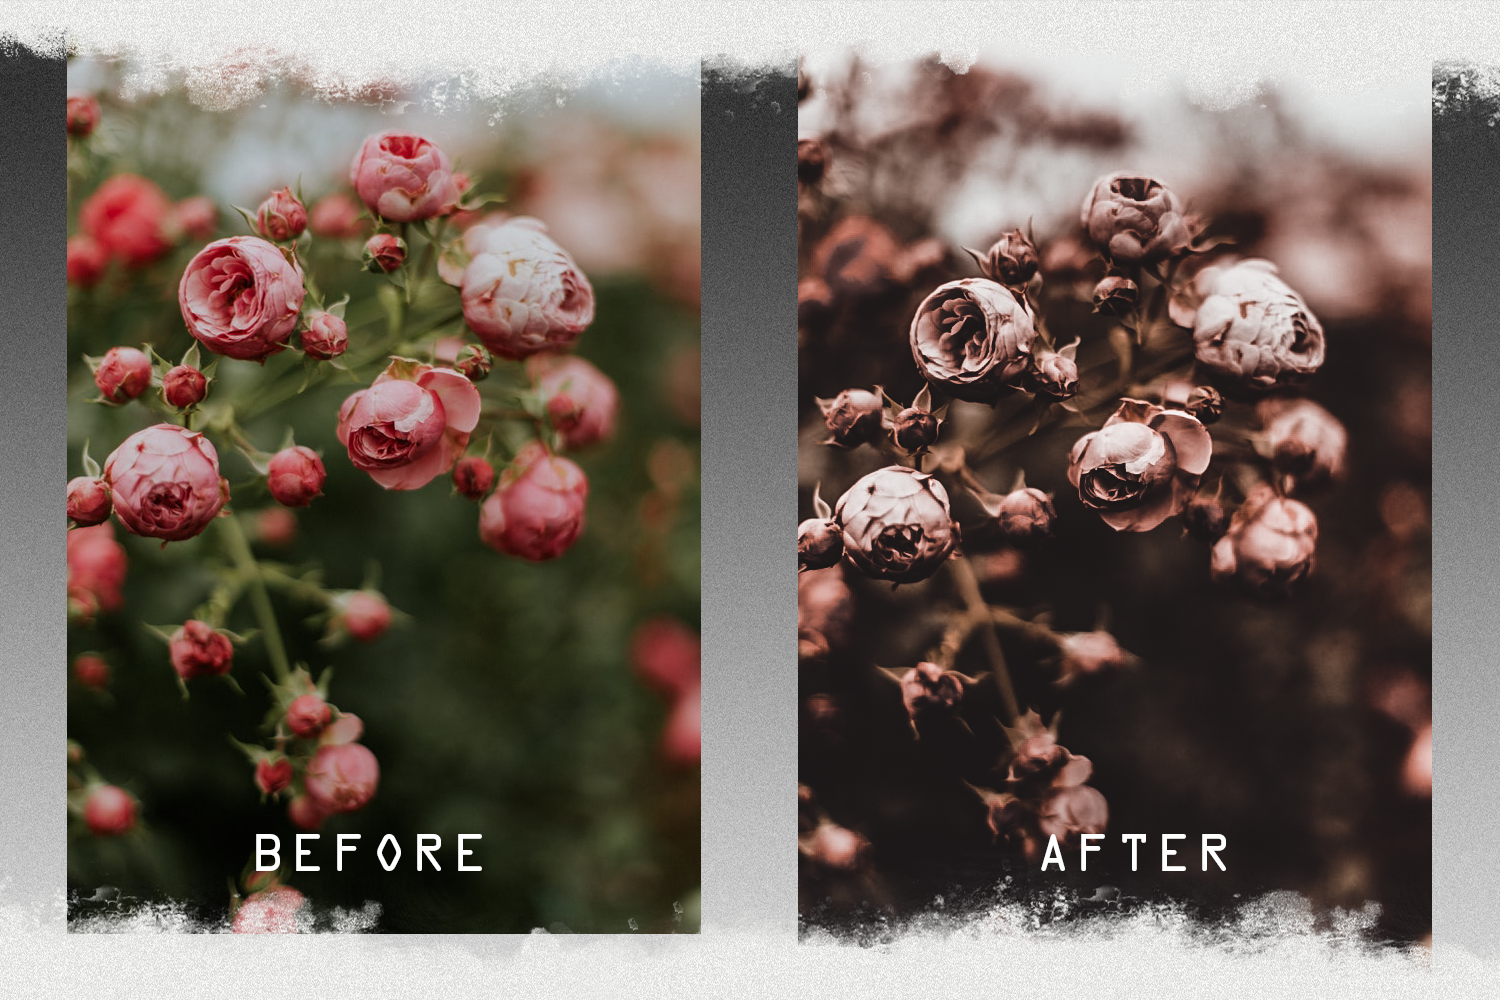 Nude presets for mobile and PC photo filter, photo effect example image 8